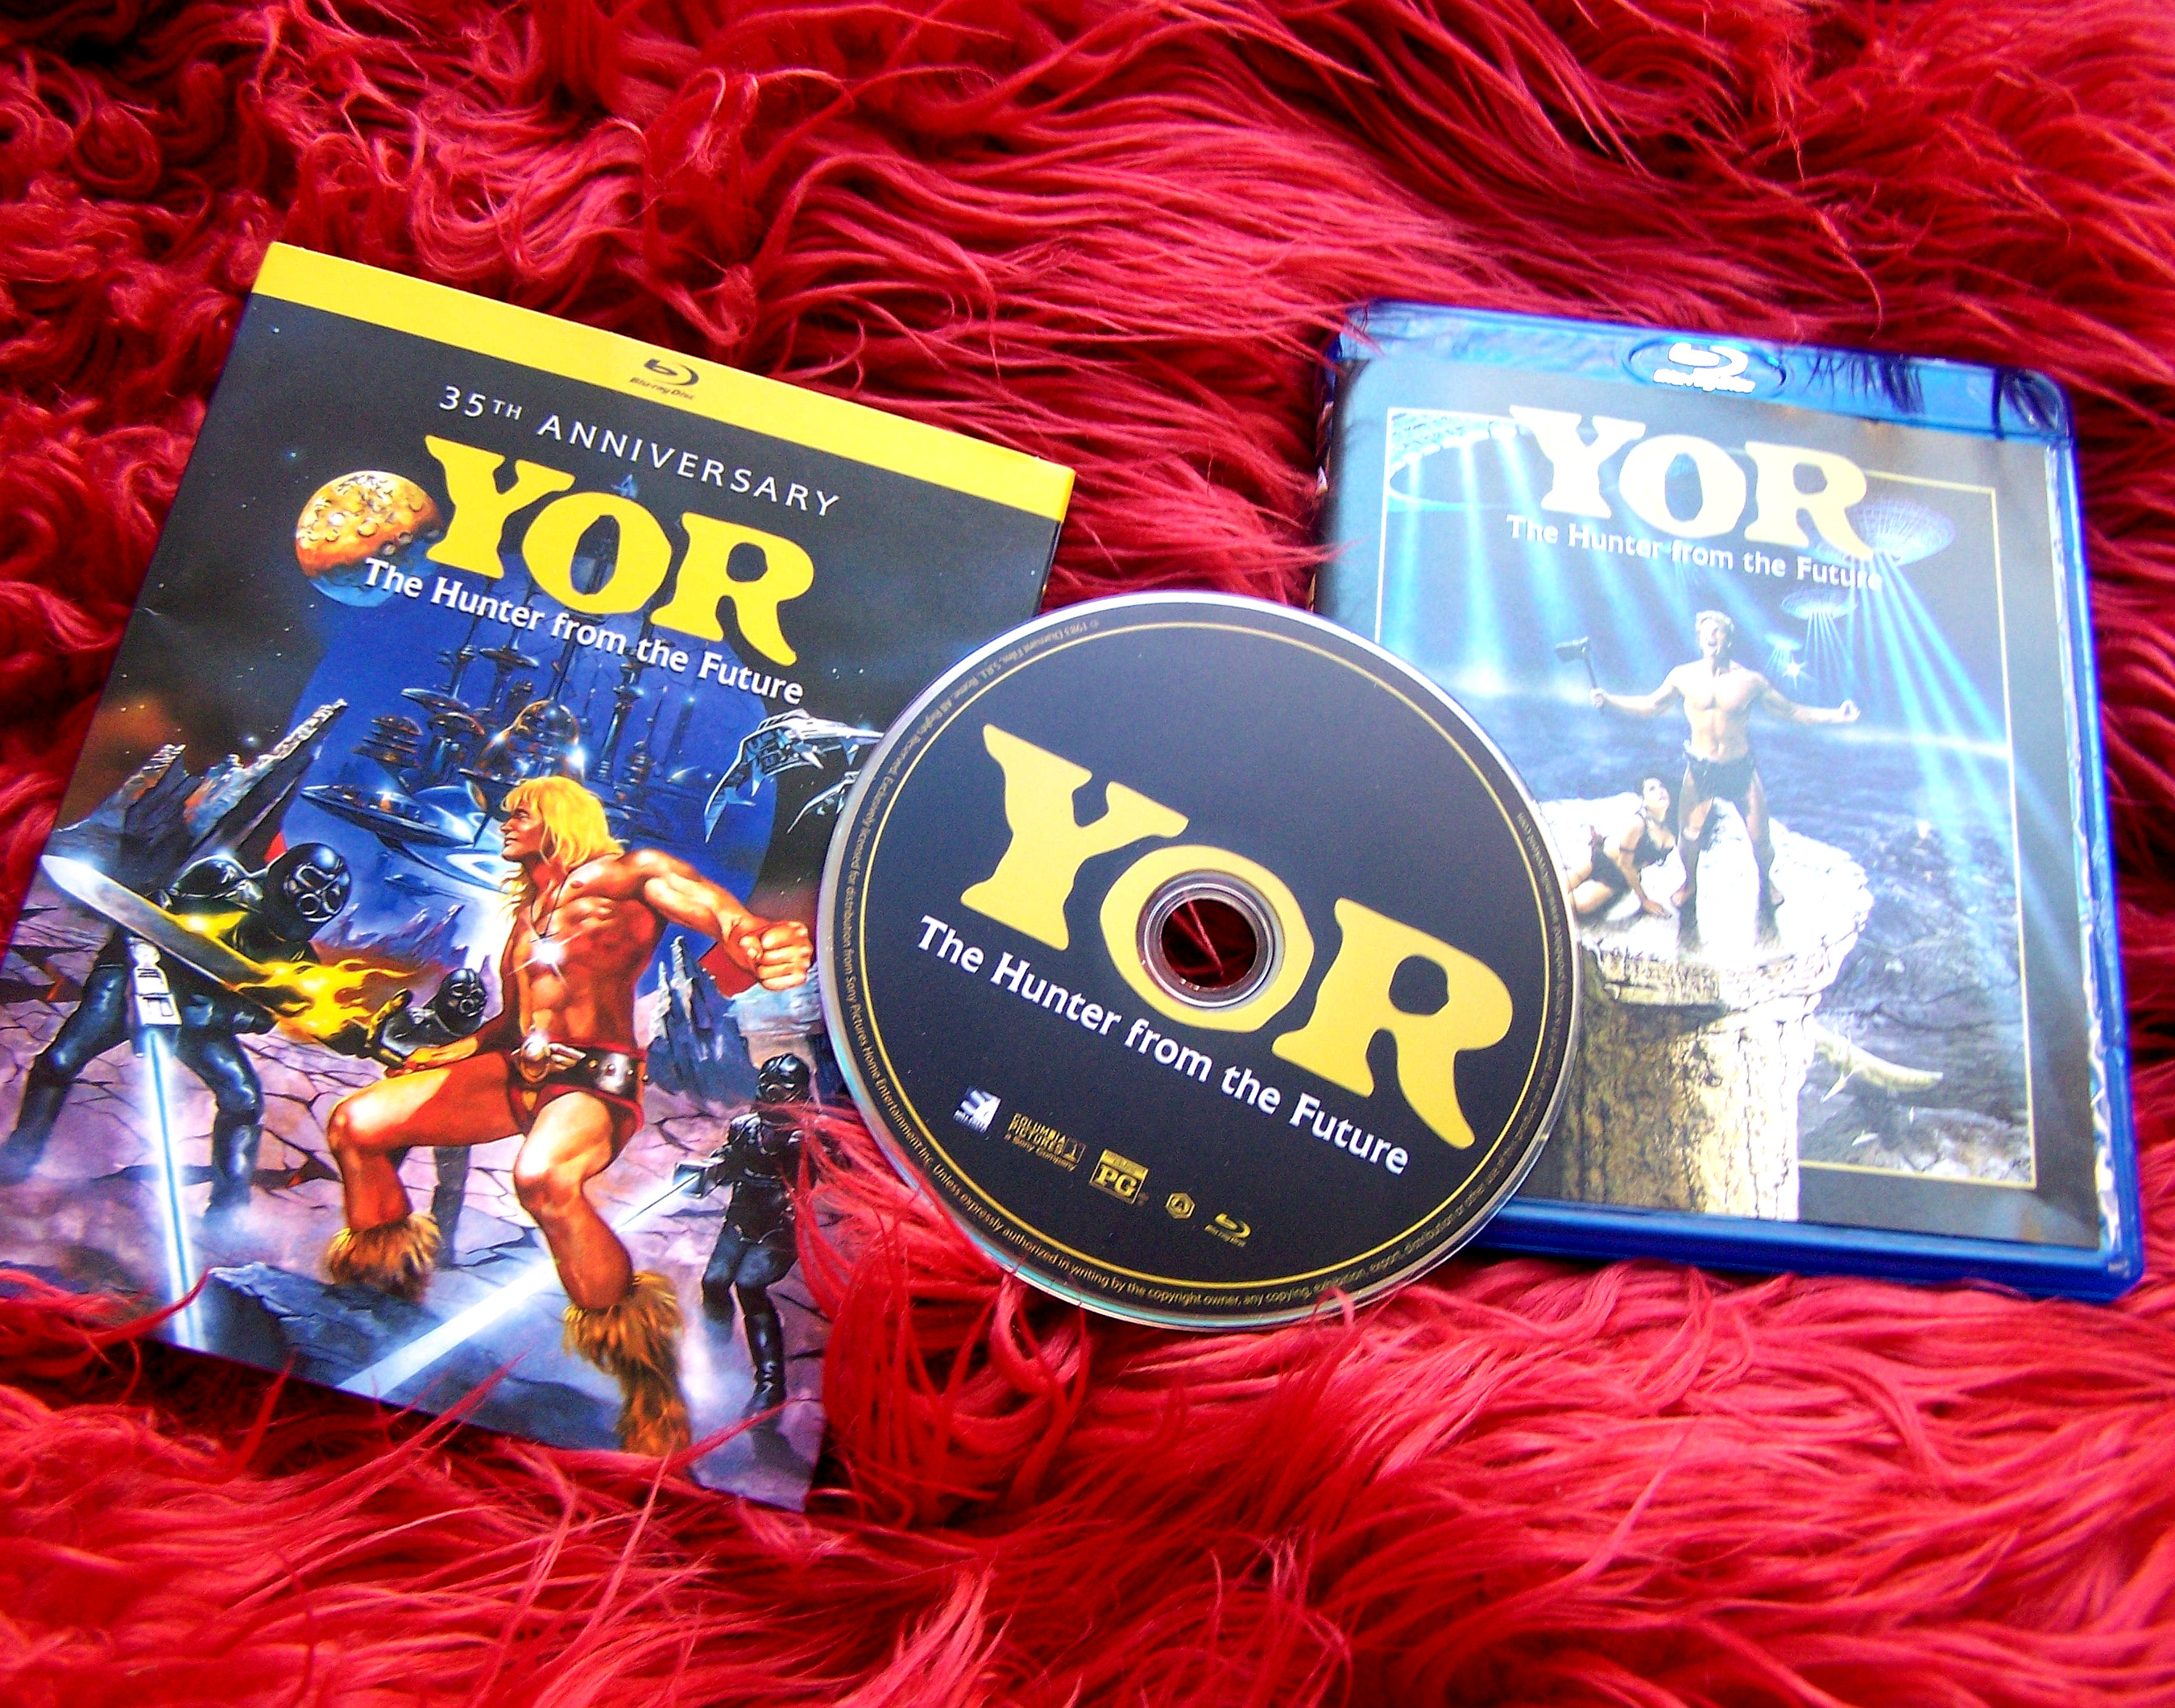 yor the hunter from the future, bluray dvd mill creek entertainment review movie film blog fantasy science fiction 1980s 80s cheesy funny so bad its good dinosaurs cavemen spaceships